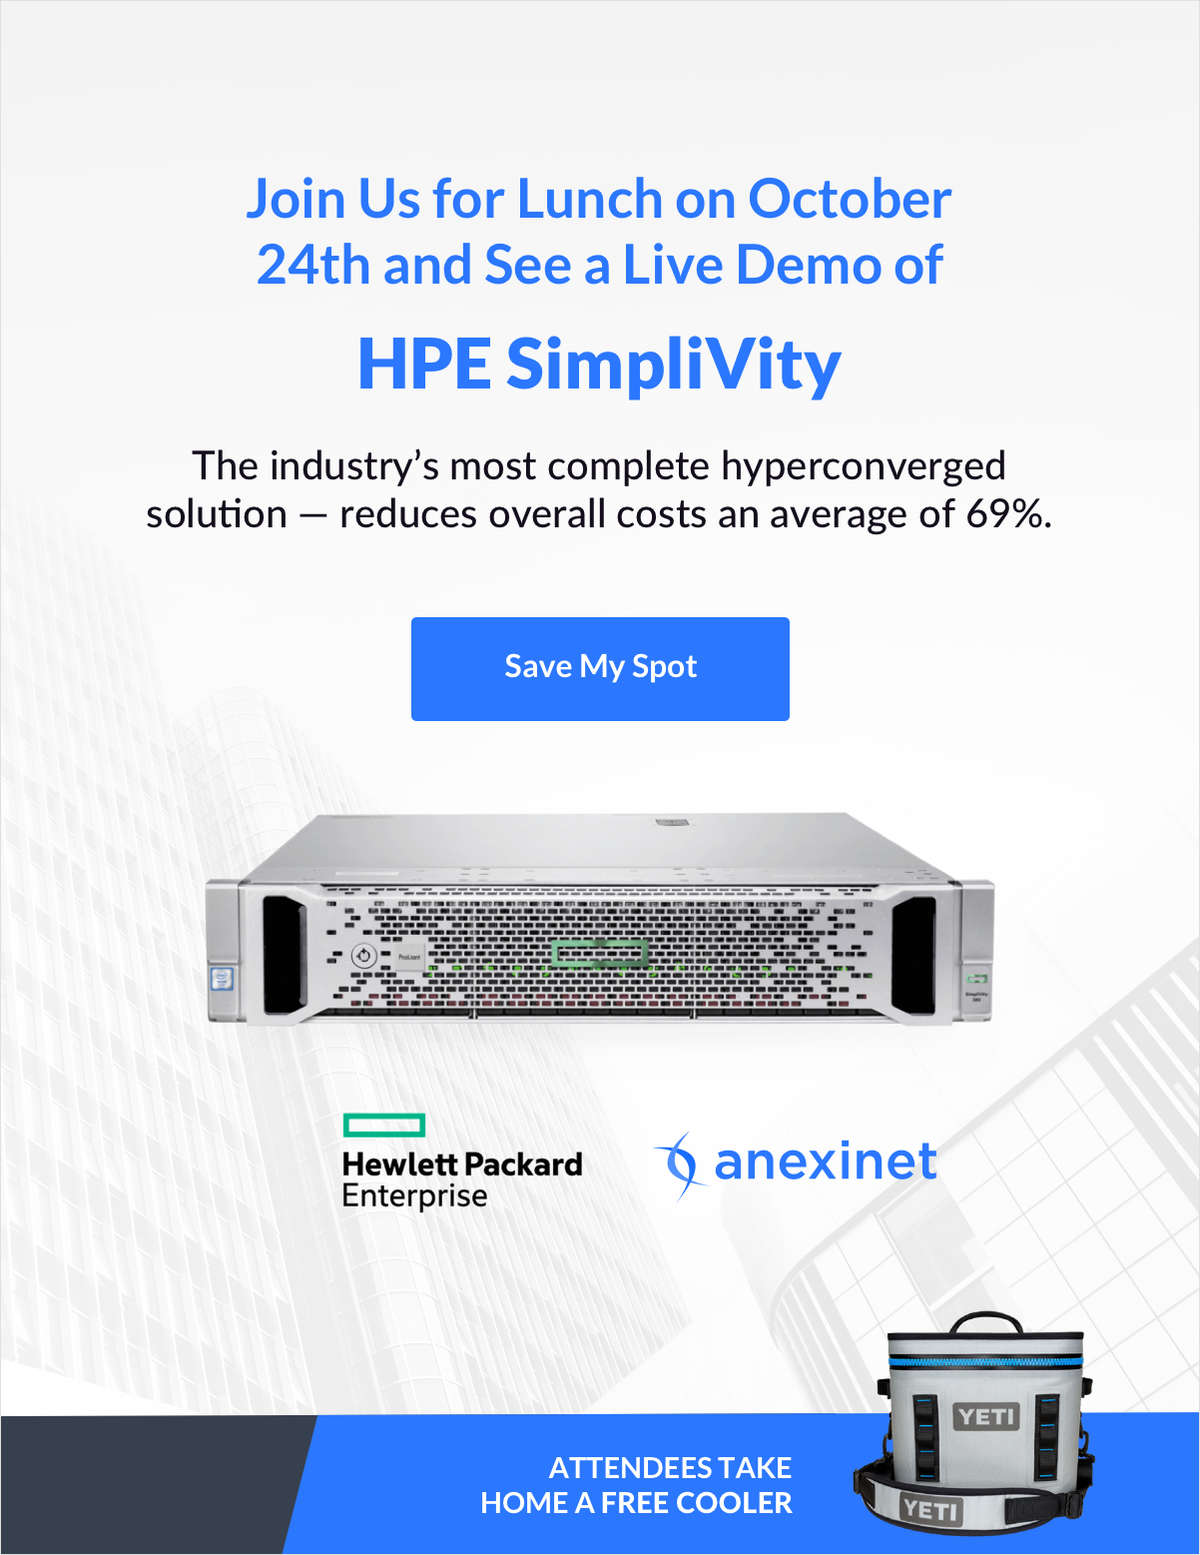 HPE Live Demo Day